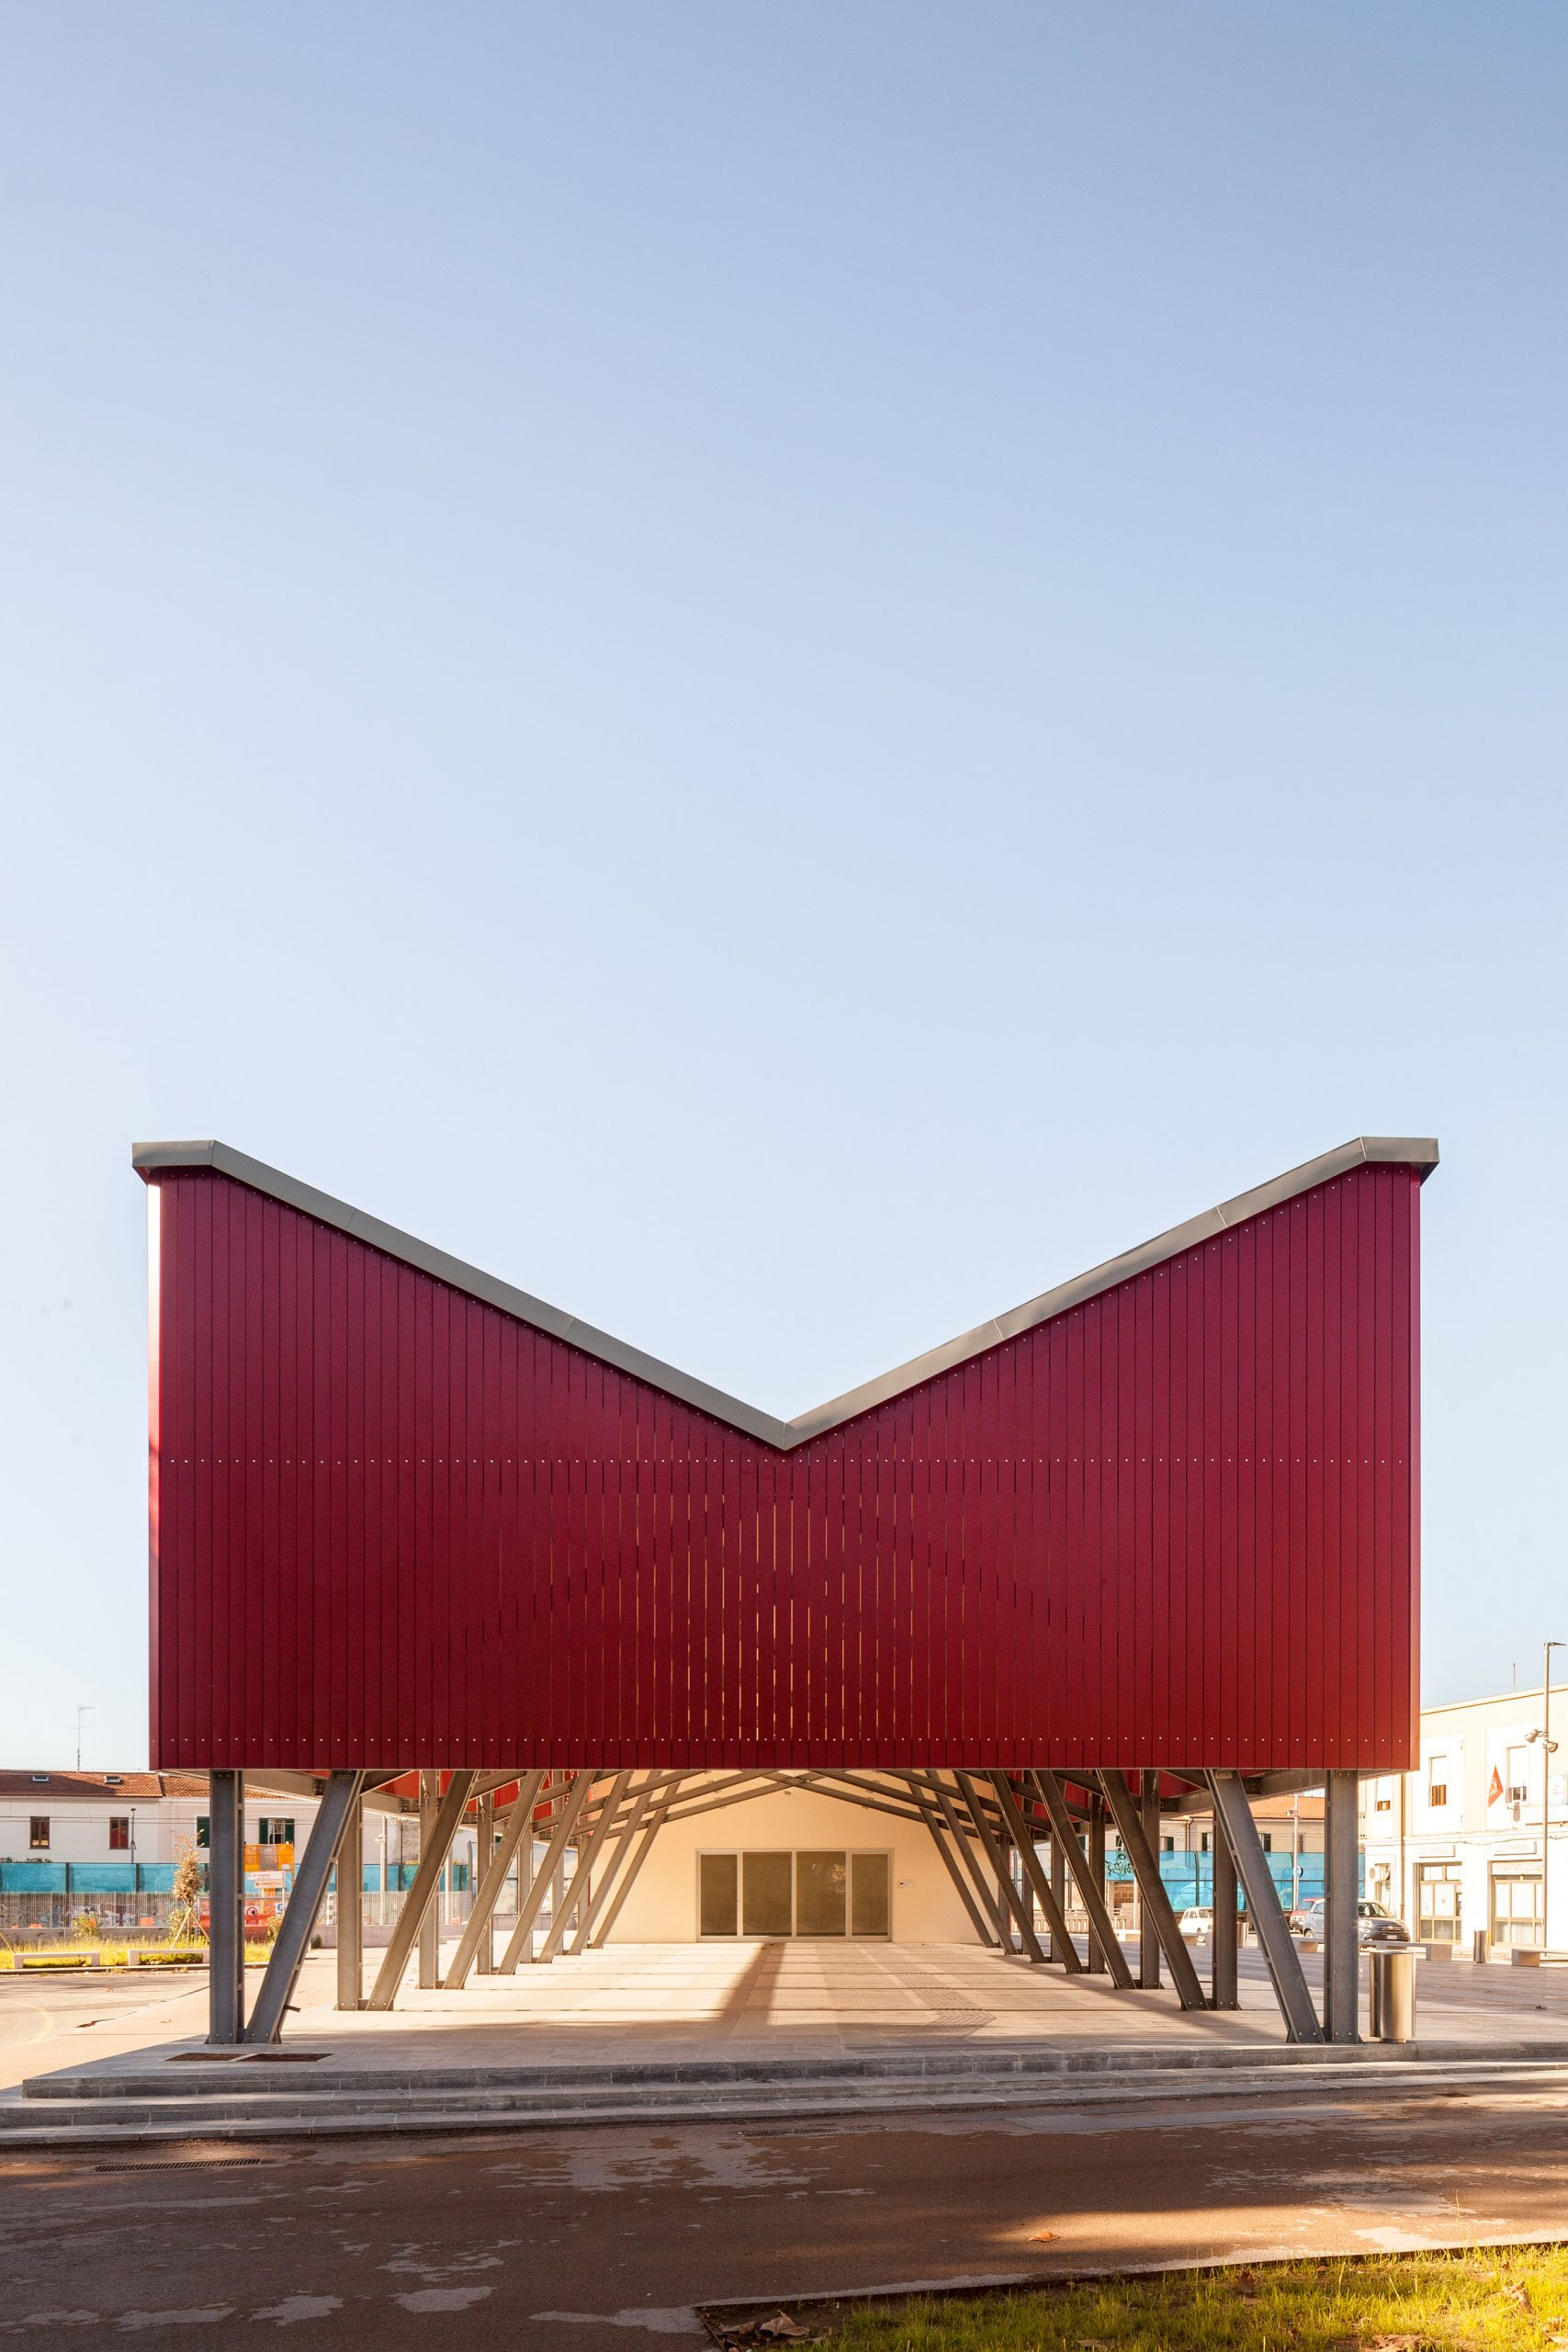 A covered events space with red cladding